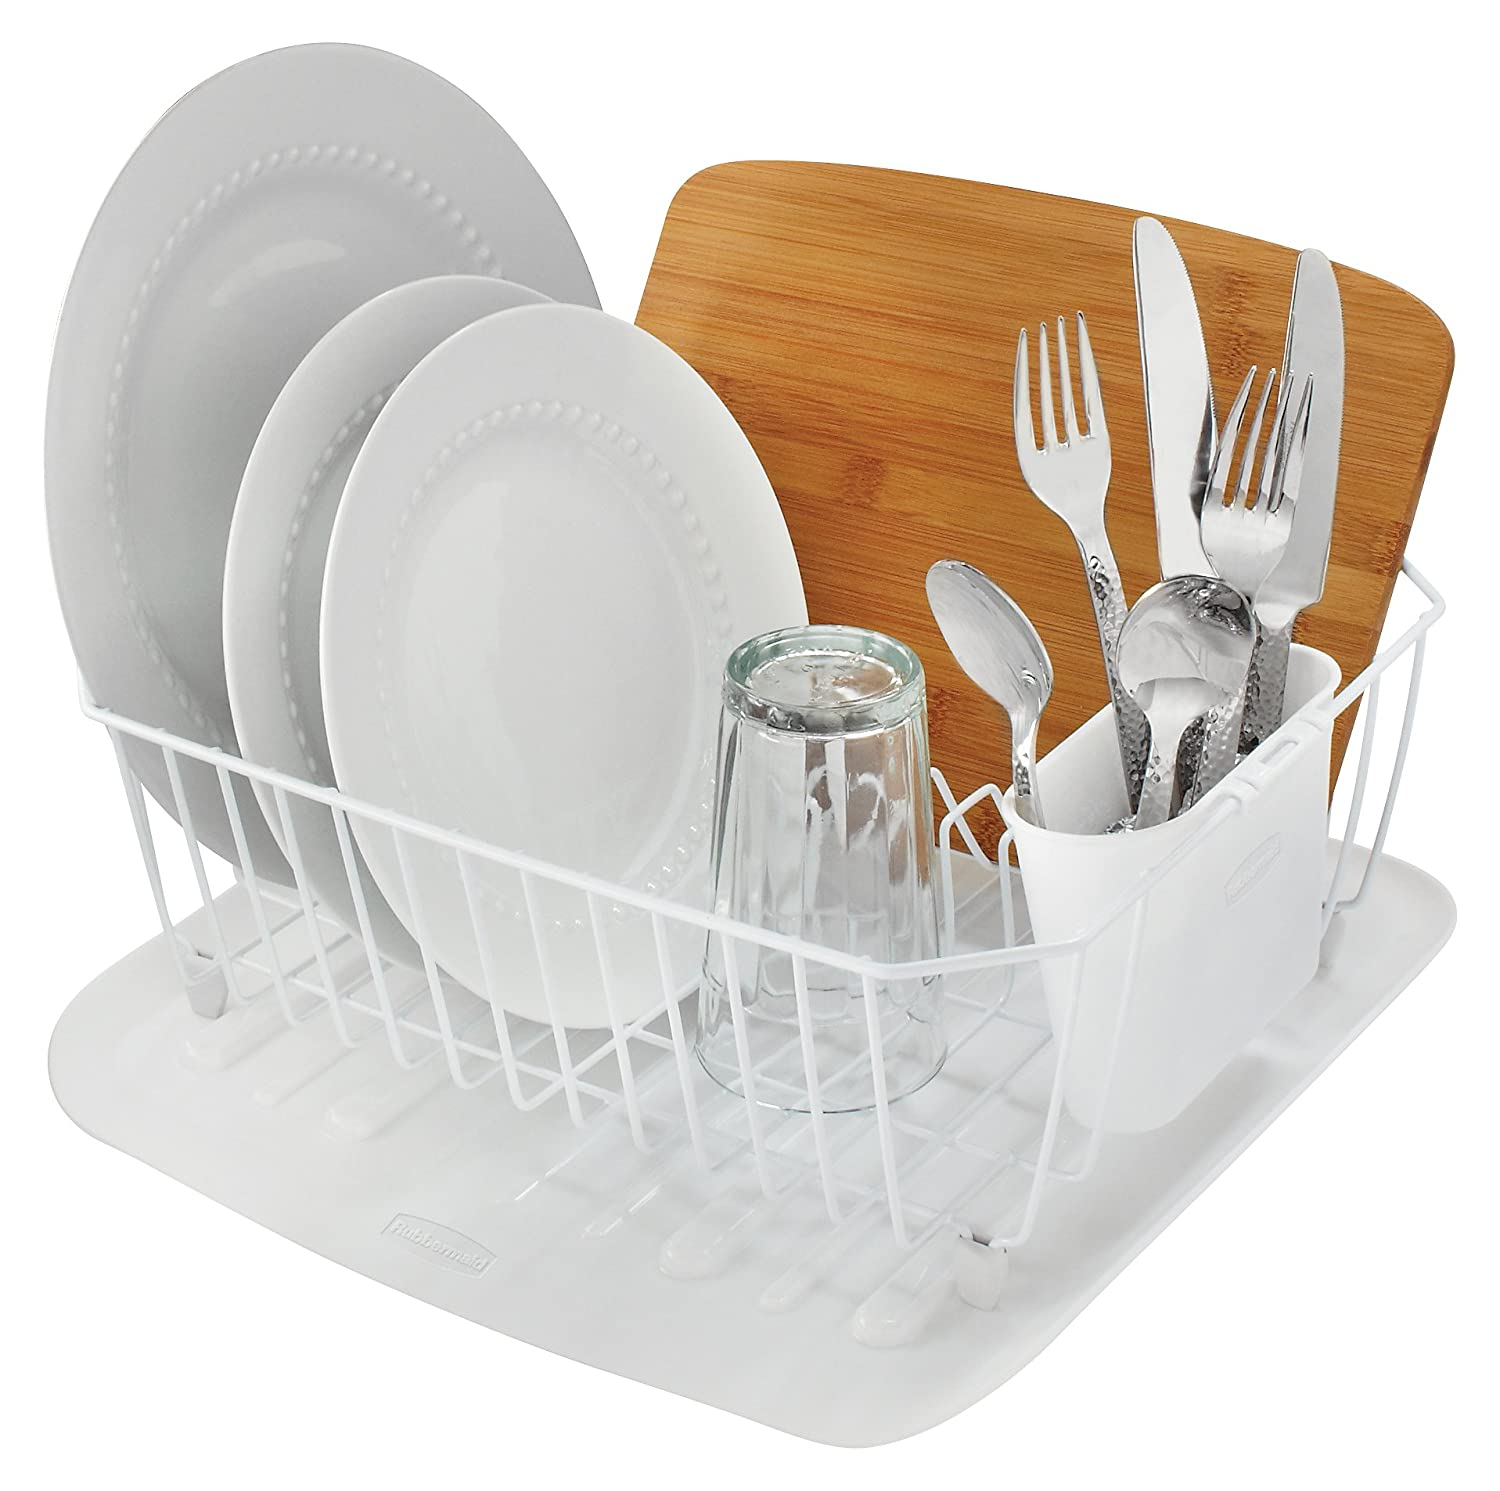 Amazon: Rubbermaid Antimicrobial Dish Drainer, Small, White: Dish Racks:  Kitchen & Dining